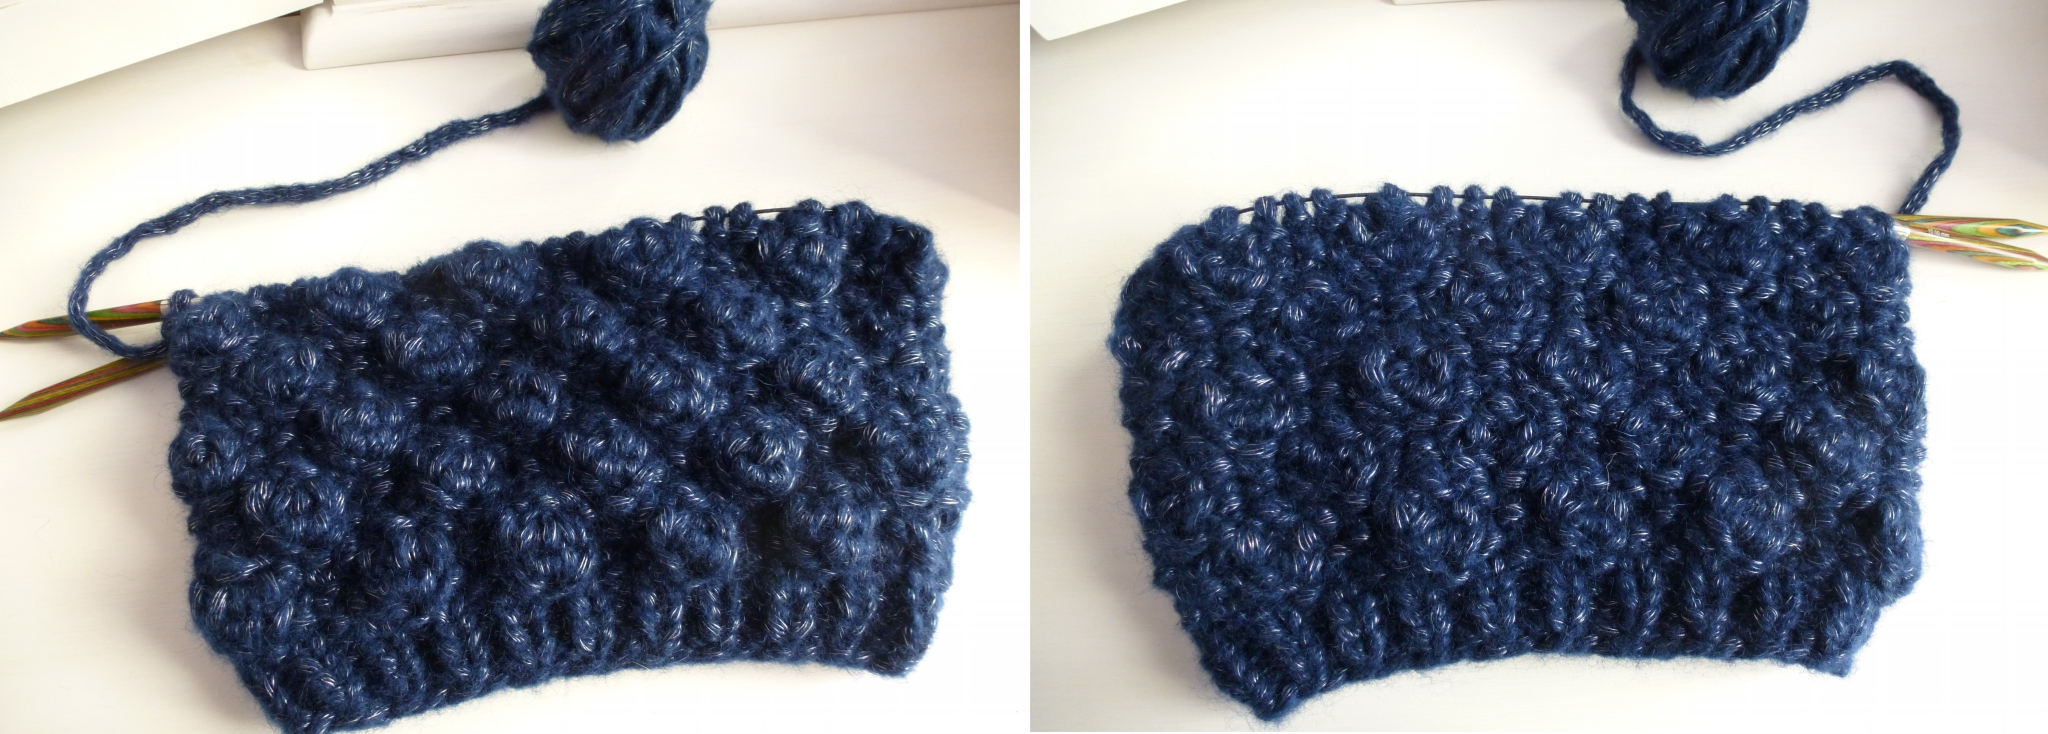 Tuto noppes tricot